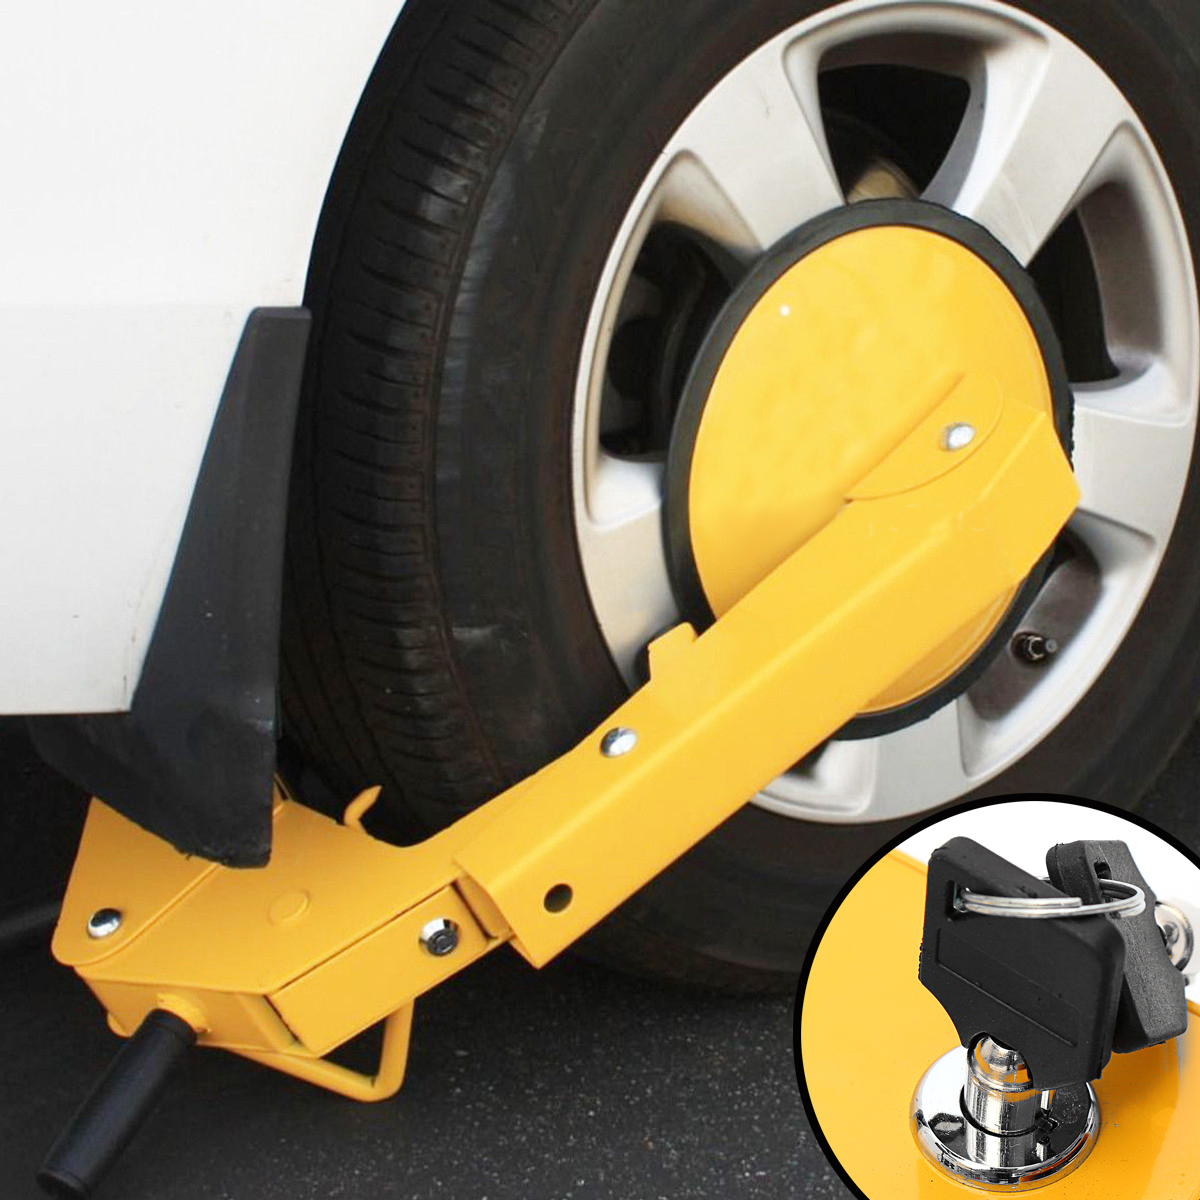 ATV RV Car Tire Claw Wheel Clamp Boat Truck Trailer Lock Anti Theft Parking Boot Theft Devices Foldable Vehicle Lock for CarATV RV Car Tire Claw Wheel Clamp Boat Truck Trailer Lock Anti Theft Parking Boot Theft Devices Foldable Vehicle Lock for Car